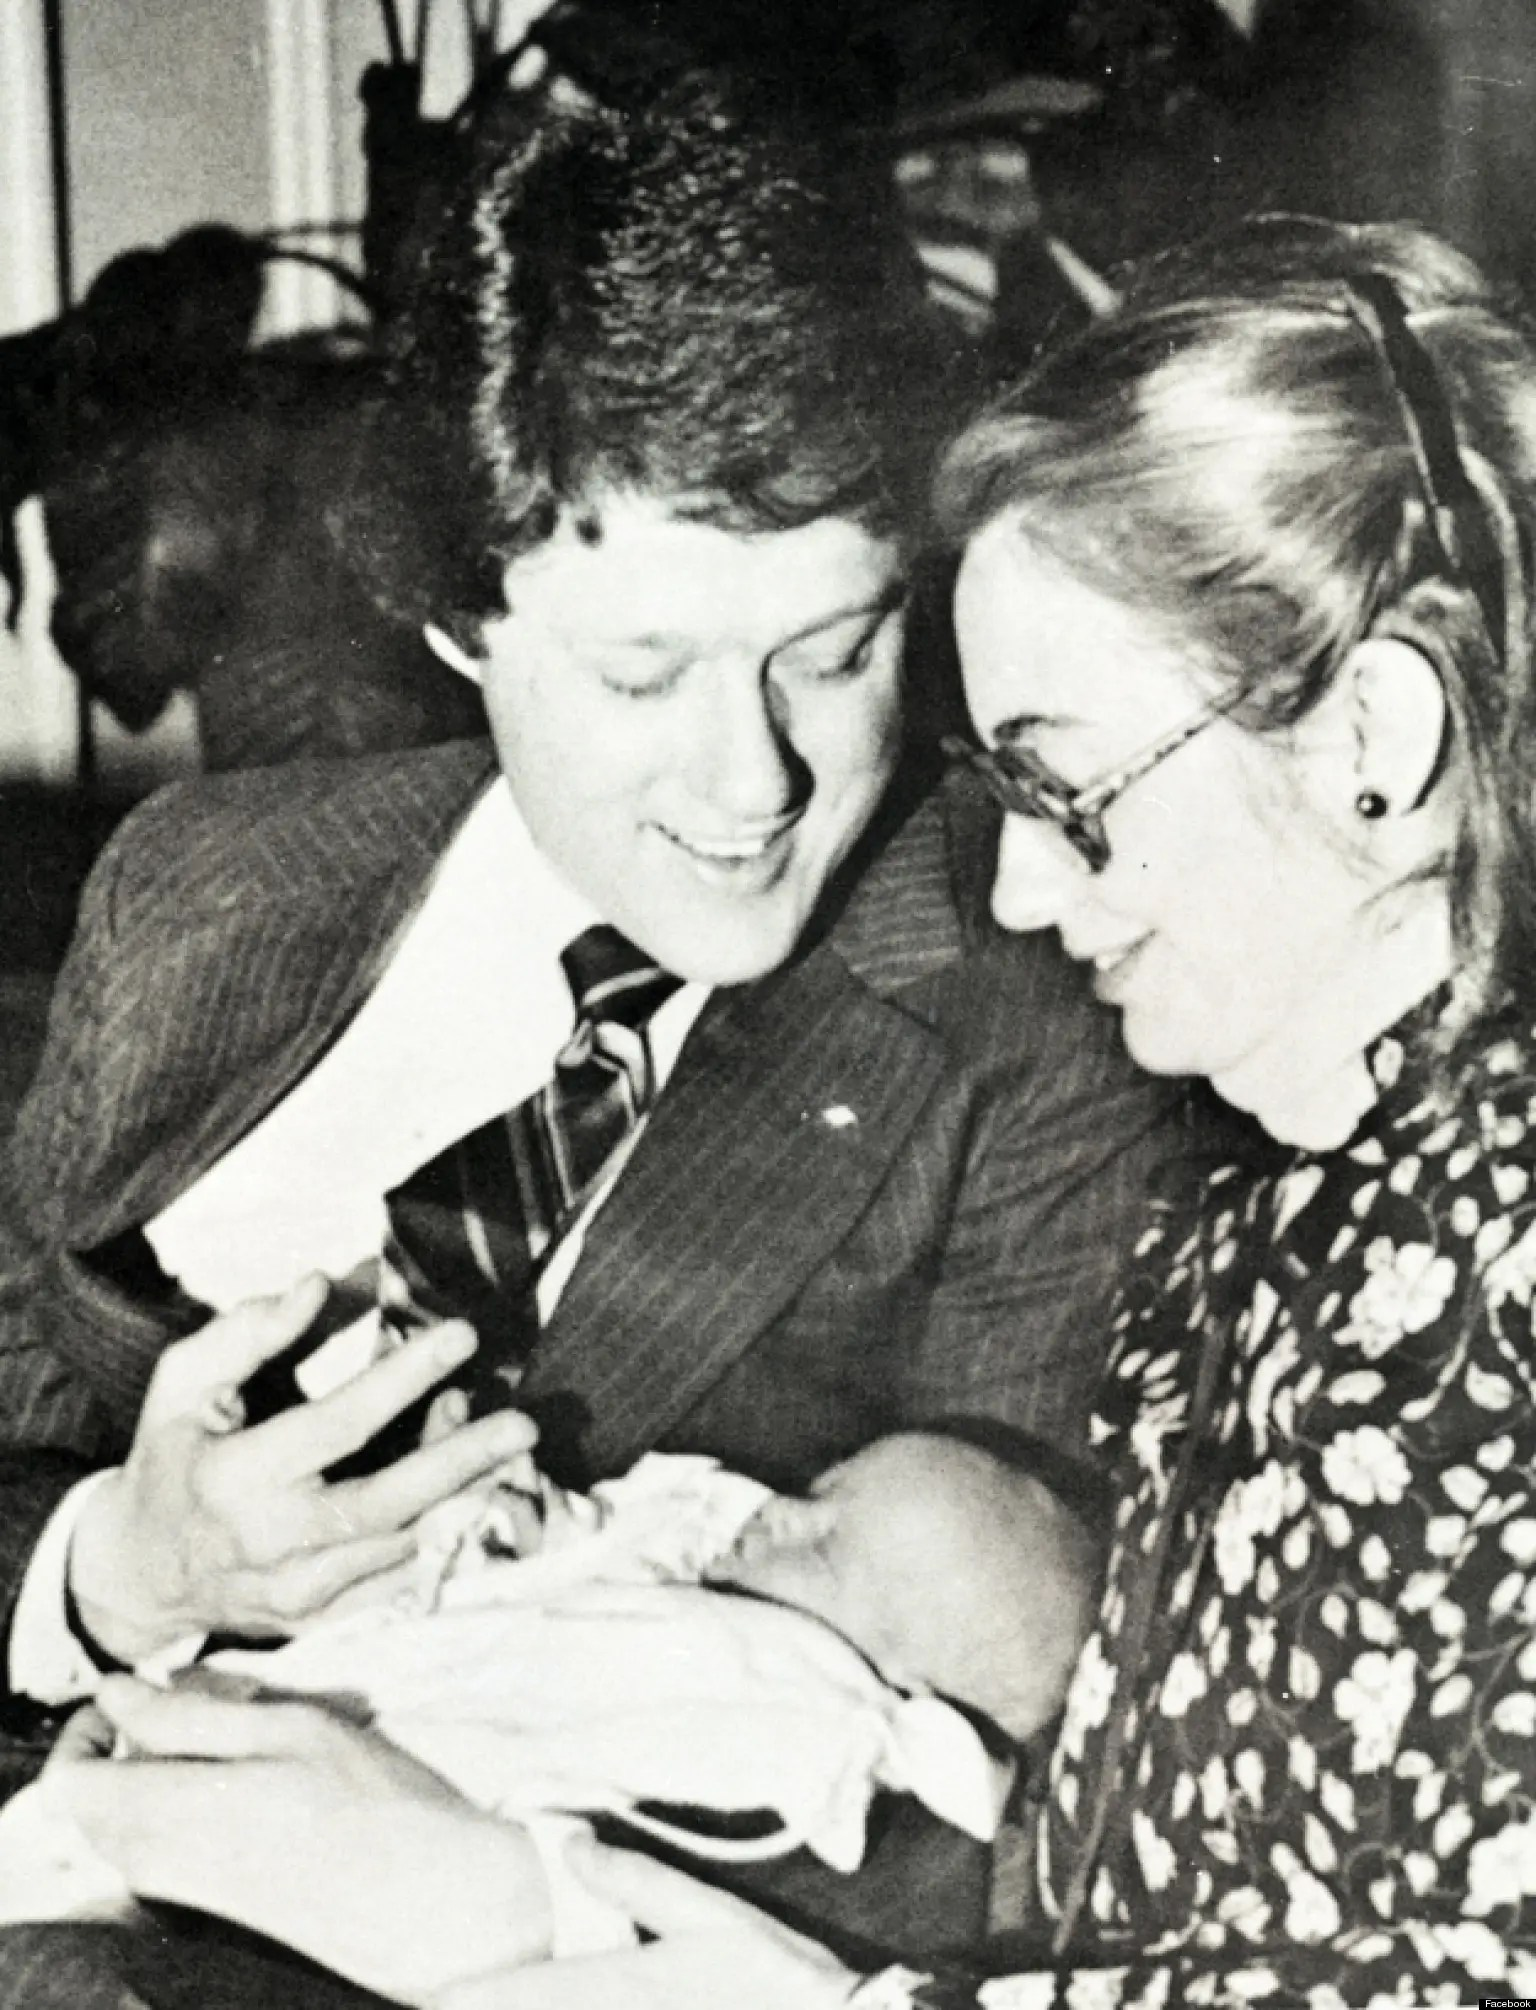 Clinton, who originally declined to take on her husband's last name, had ambitions of her own. In a new state, she taught college law, became the first woman to make partner at her firm, and gave birth to a girl, named Chelsea.